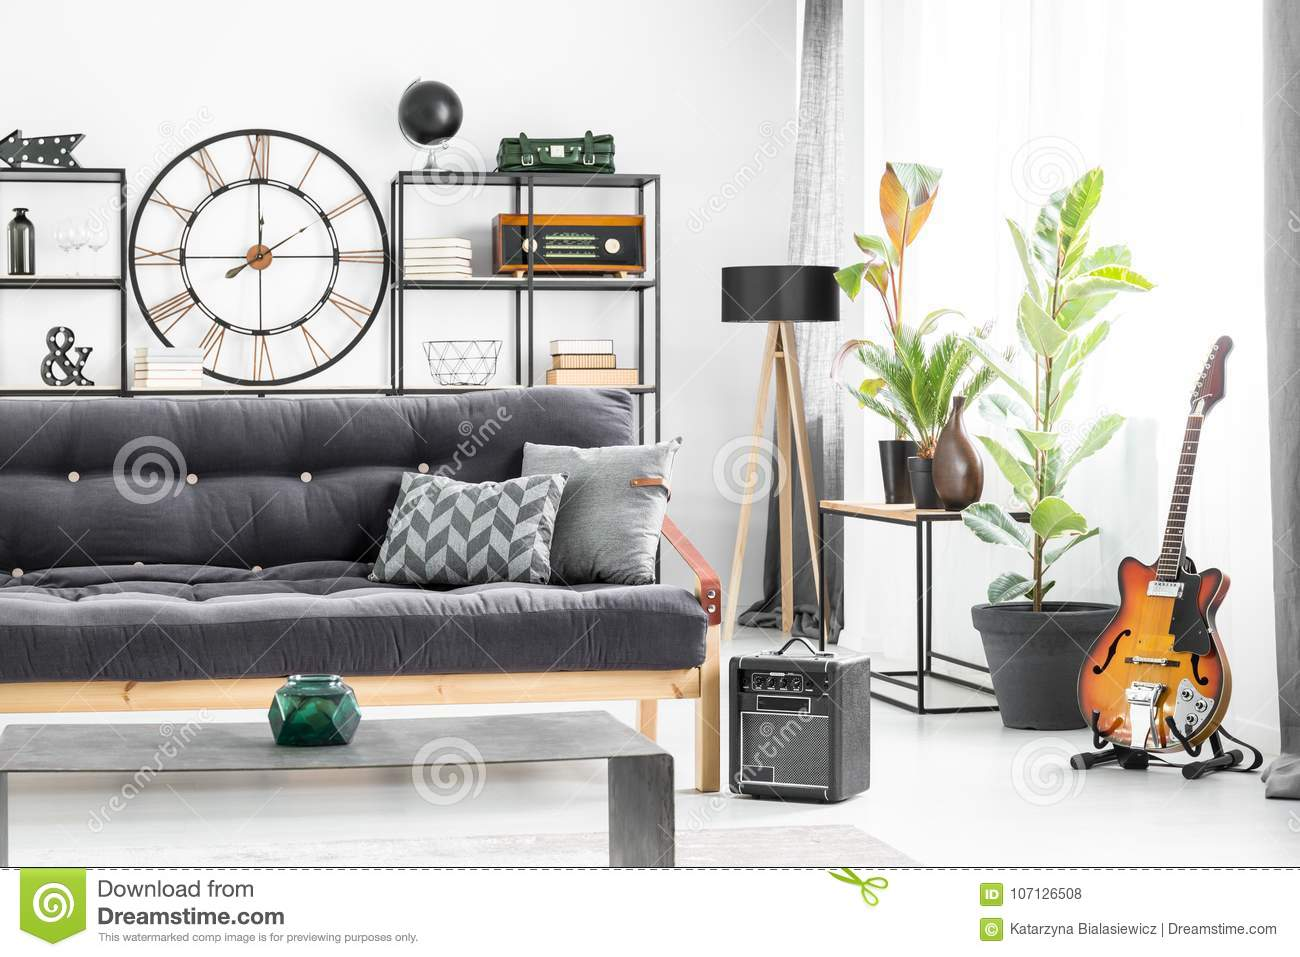 Grey Pillows On Dark Settee In Front Of A Table In Mans Living Room Interior With Guitar And Designer Clock On The Wall